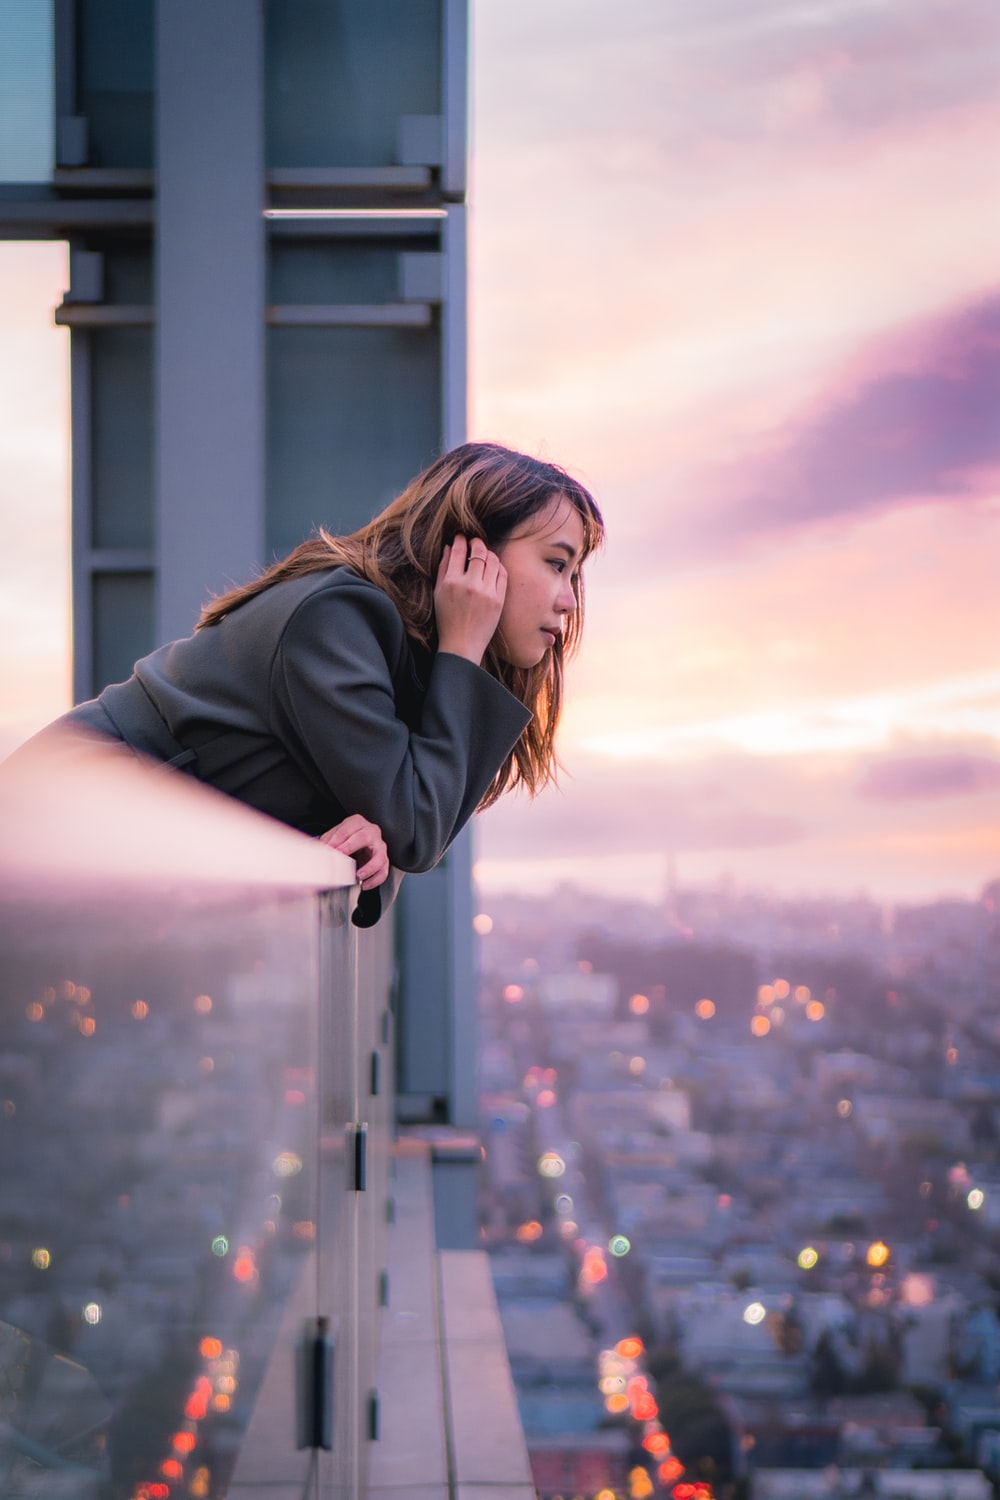 woman in black jacket standing on building during daytime